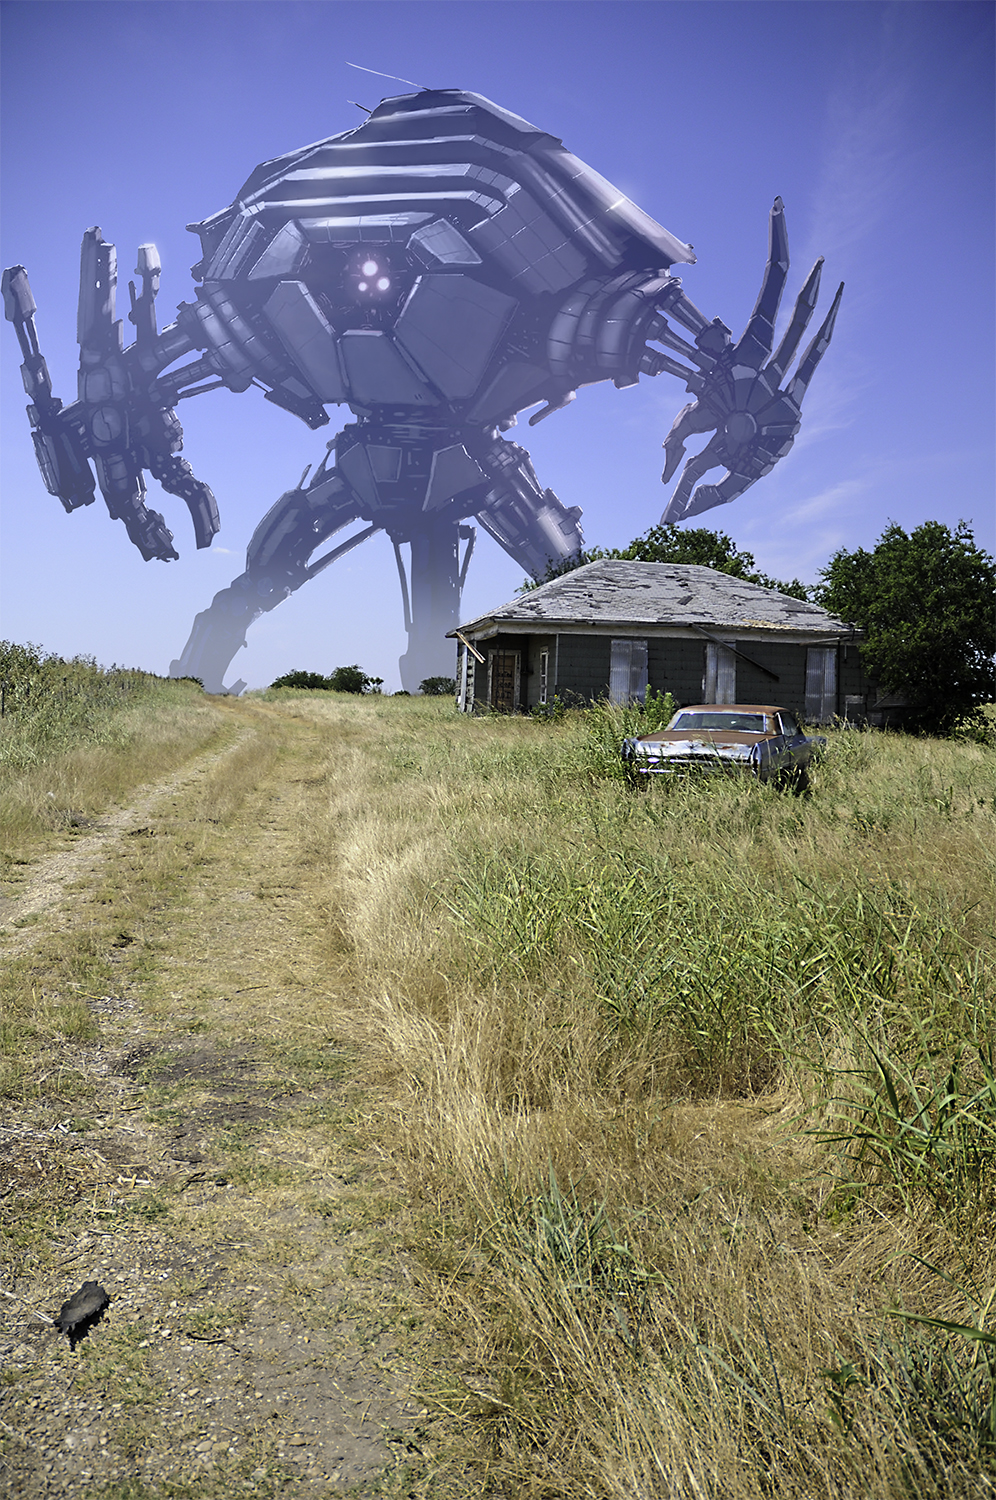 giant robot in a field in the country rusted car